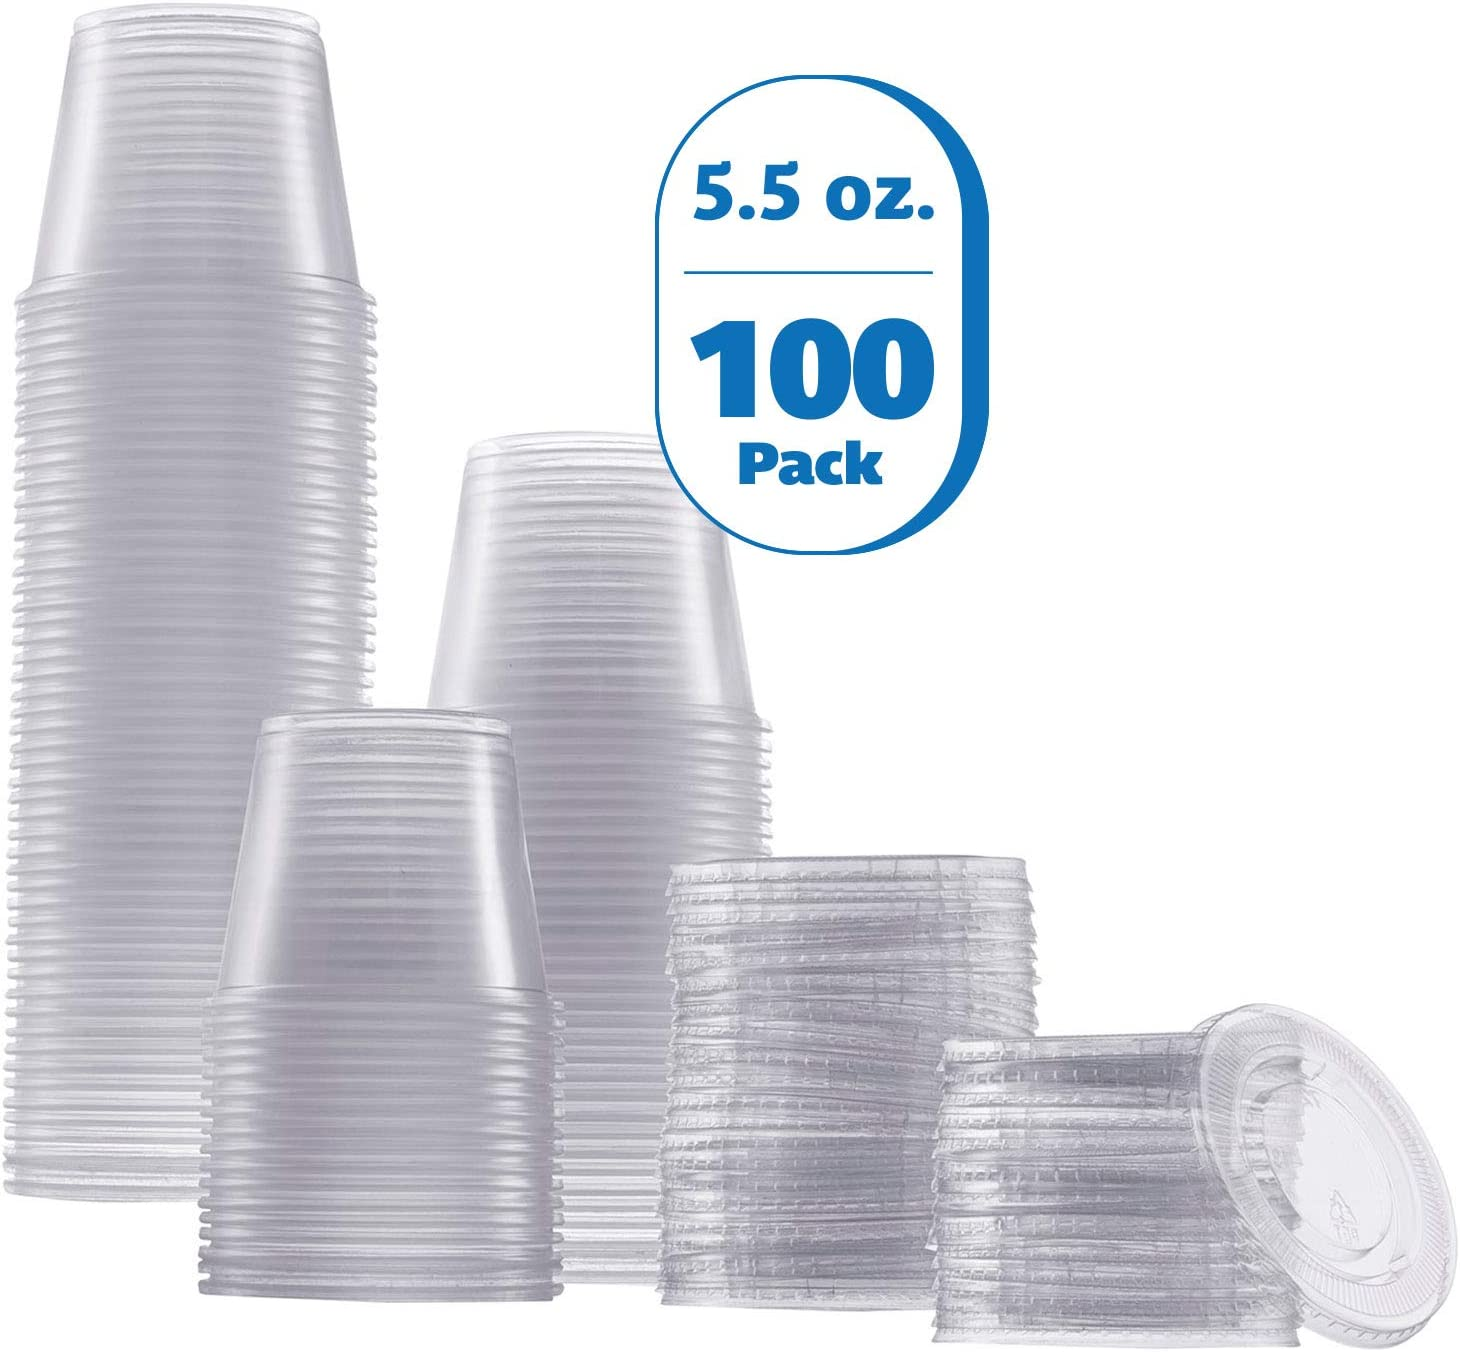 Zeml Portion Cups with Lids (5.5 Ounces, 100 Pack) | Disposable Plastic Cups for Meal Prep, Portion Control, Salad Dressing, Jello Shots, Slime & Medicine | Premium Small Plastic Condiment Container